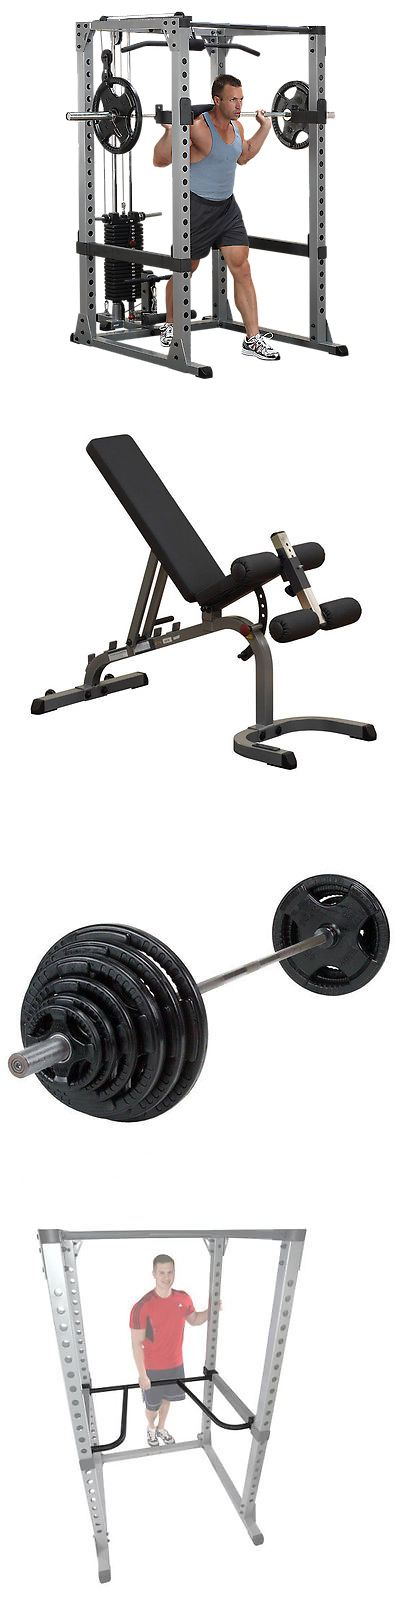 Power Racks and Smith Machines 179815: Body-Solid Package - Power Rack, Bench, Weight Set, Lat + Dip Attach, Plate Tree BUY IT NOW ONLY: $1699.0